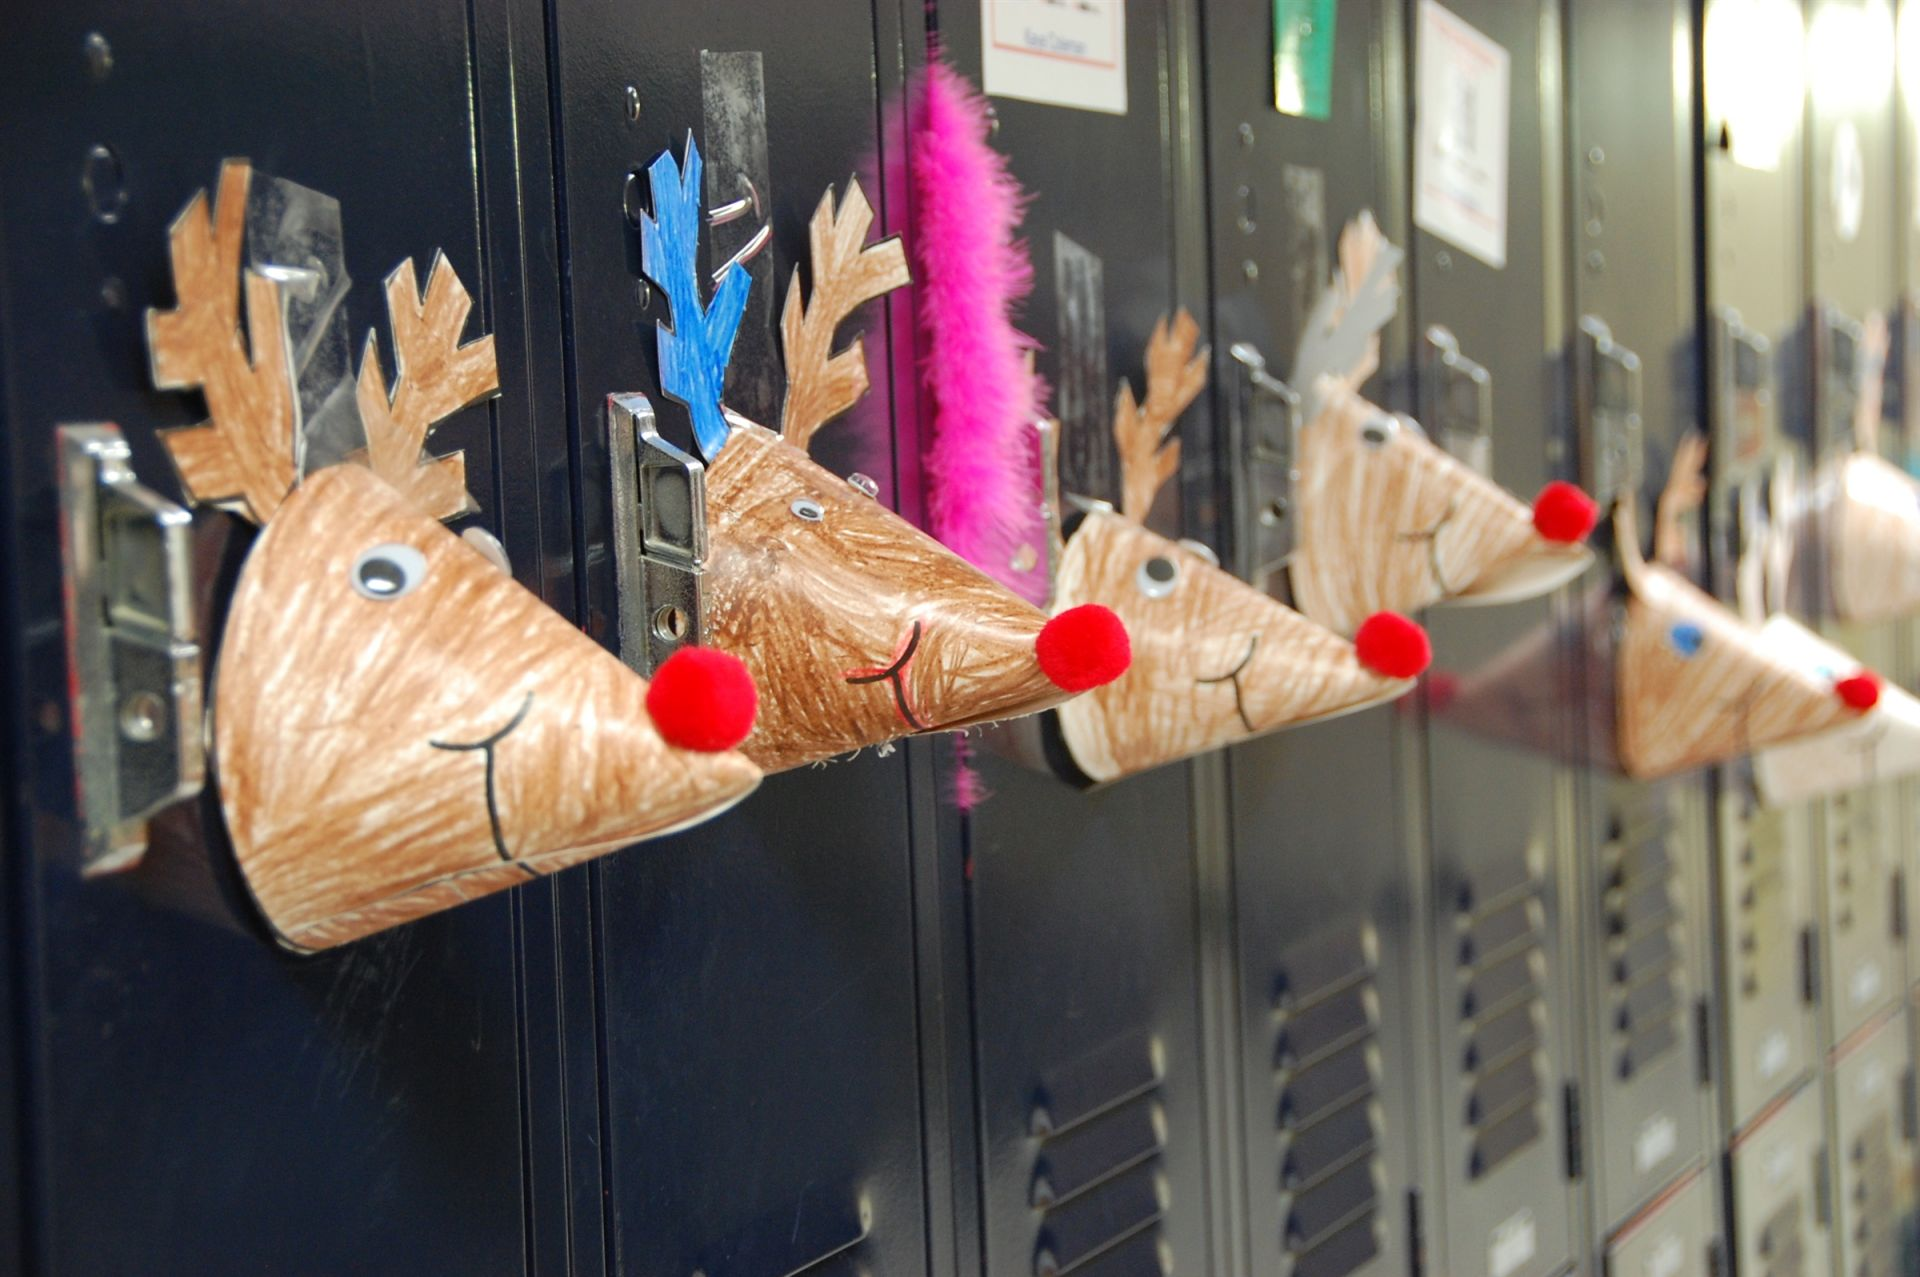 Kindergarteners surprise and delight their sixth grade buddies with whimsical locker decorations,